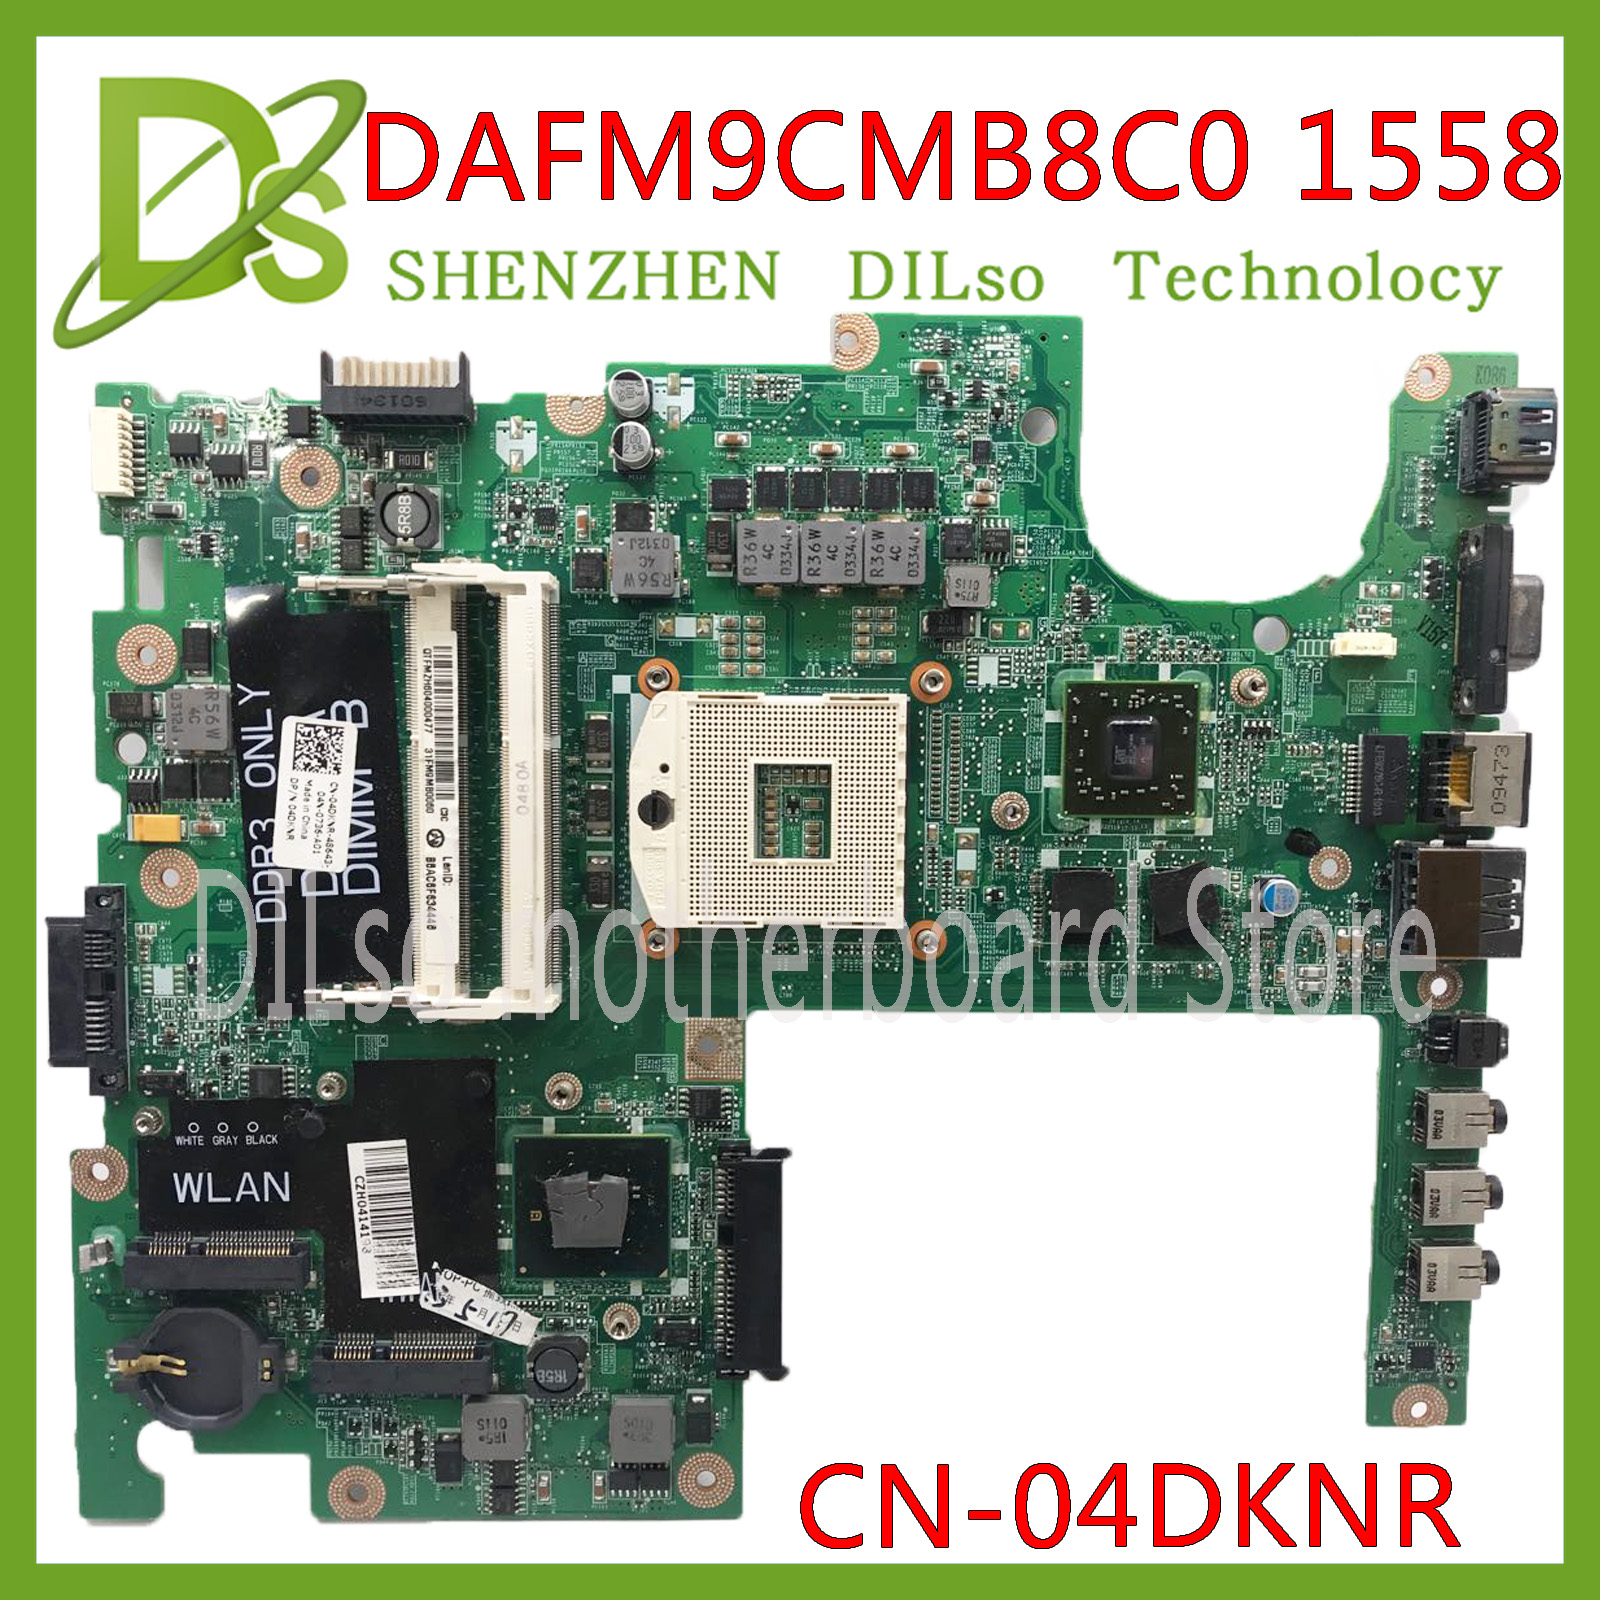 KEFU DAFM9CMB8C0 Motherboard FOR Dell Studio 1558 Laptop Motherboard CN-04DKNR HM55 PGA989 DDR3 HD5470 1GB Original 100% Tested